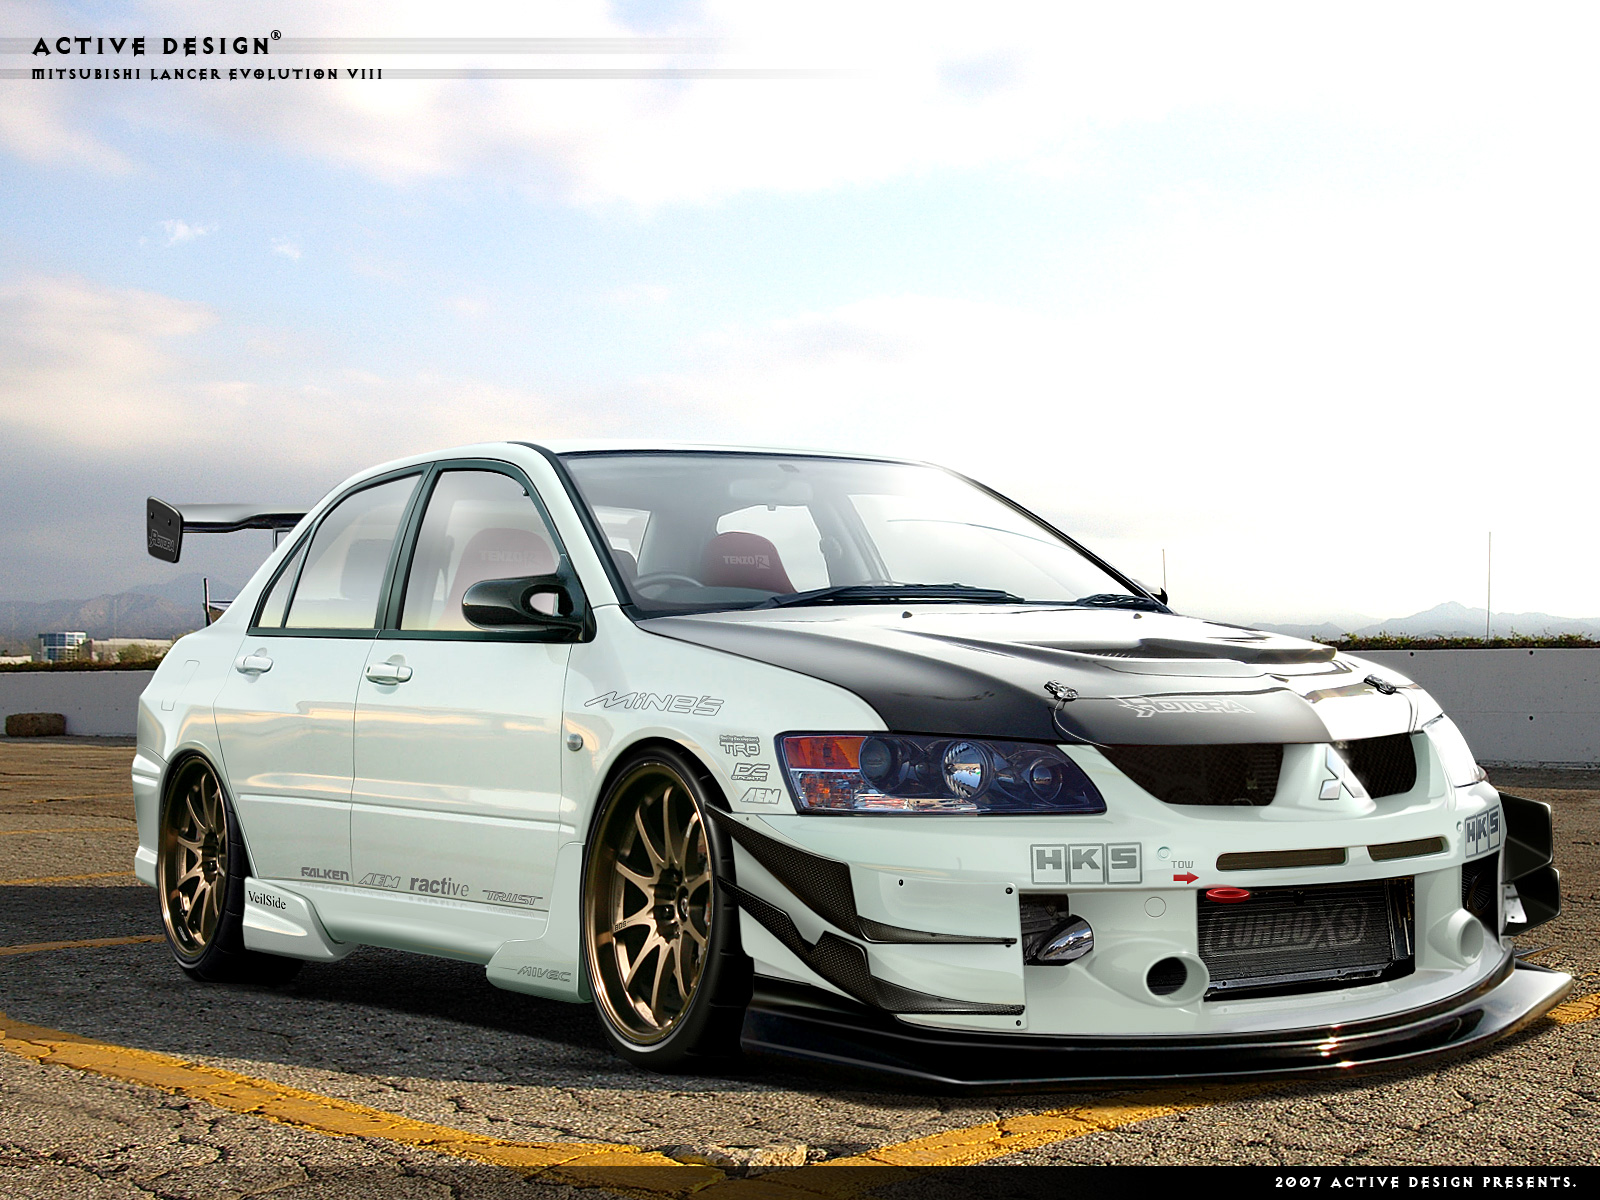 mitsubishi lancer evo 4 wallpaper free download wallpaper dawallpaperz. Black Bedroom Furniture Sets. Home Design Ideas